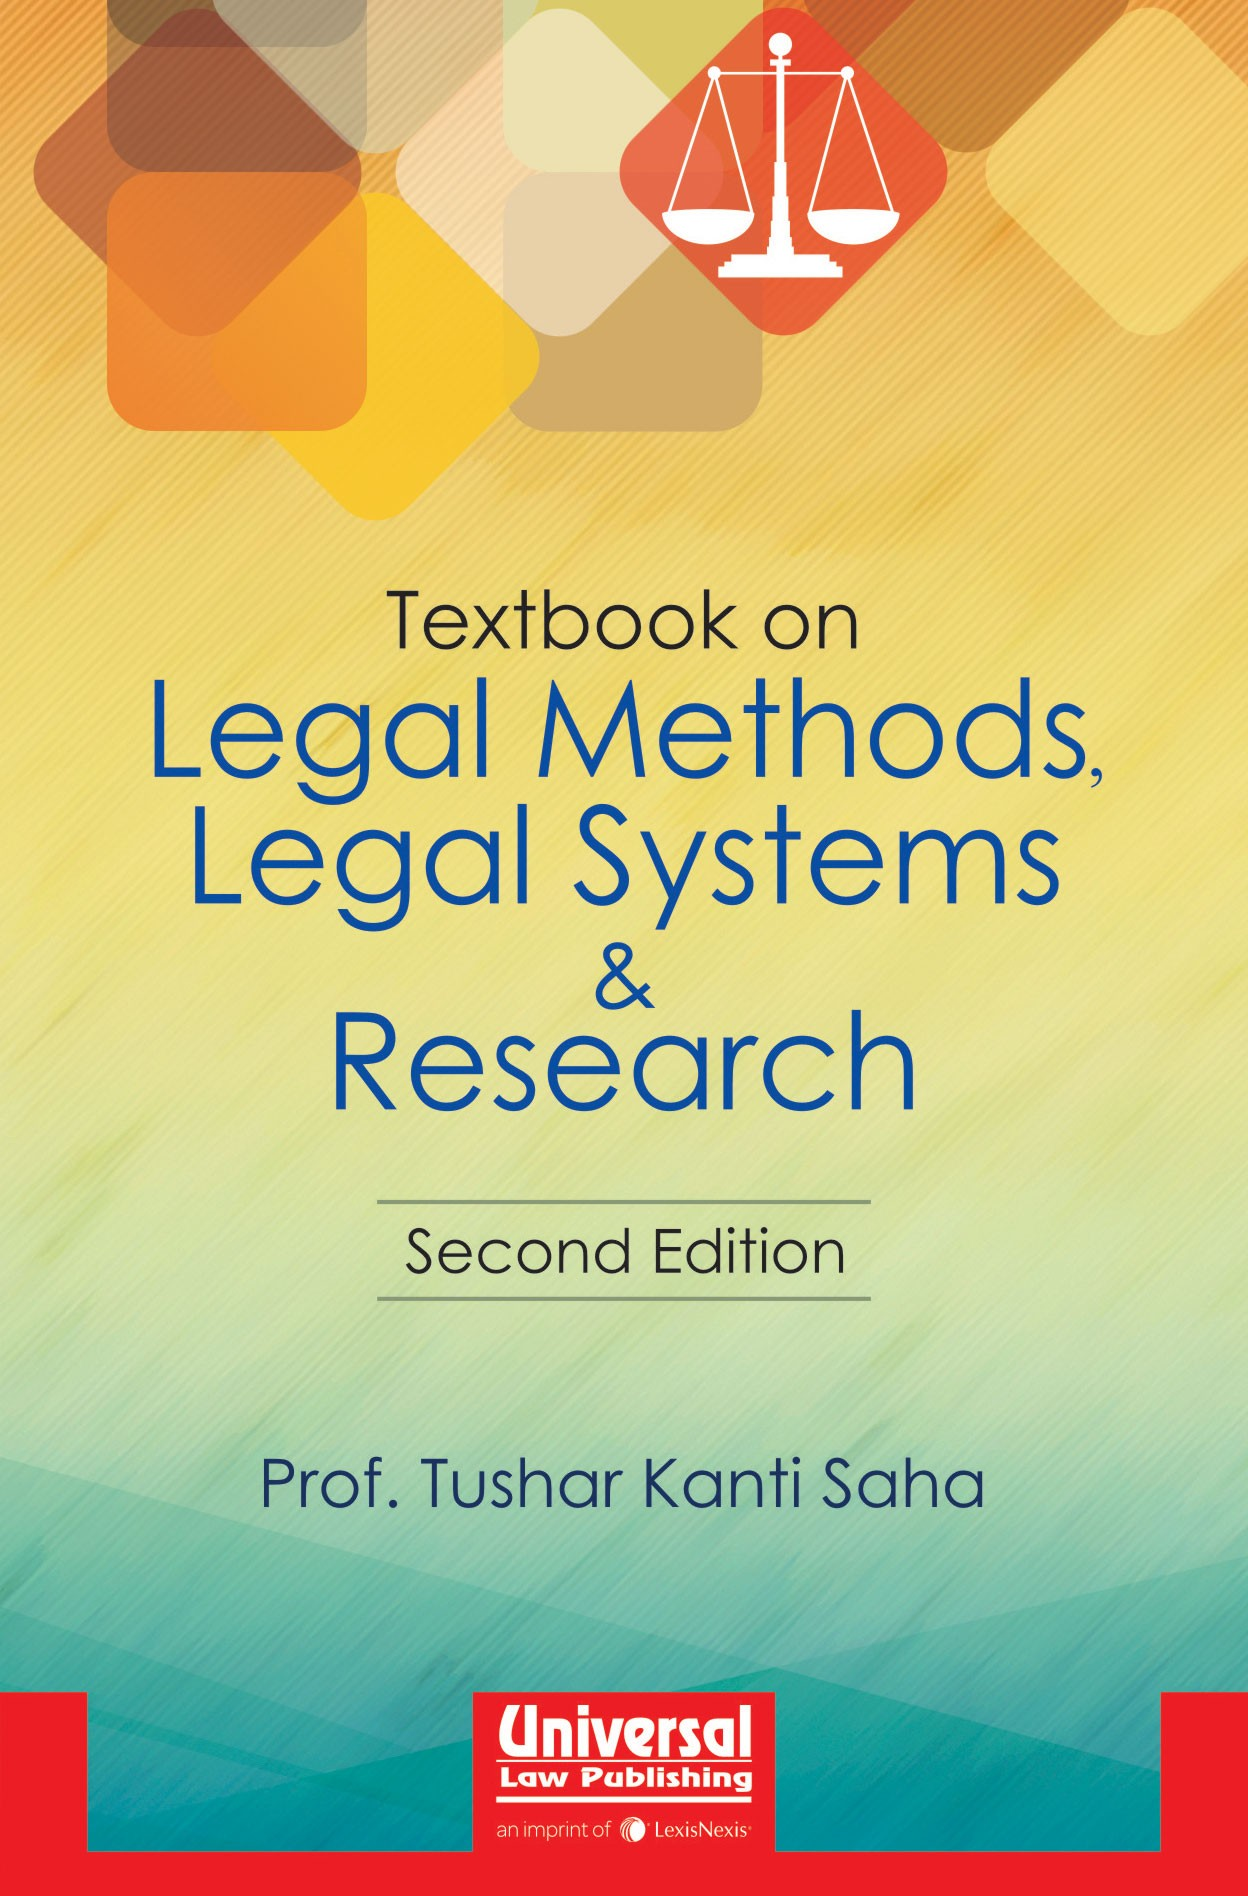 Textbook on Legal Methods, Legal Systems & Research